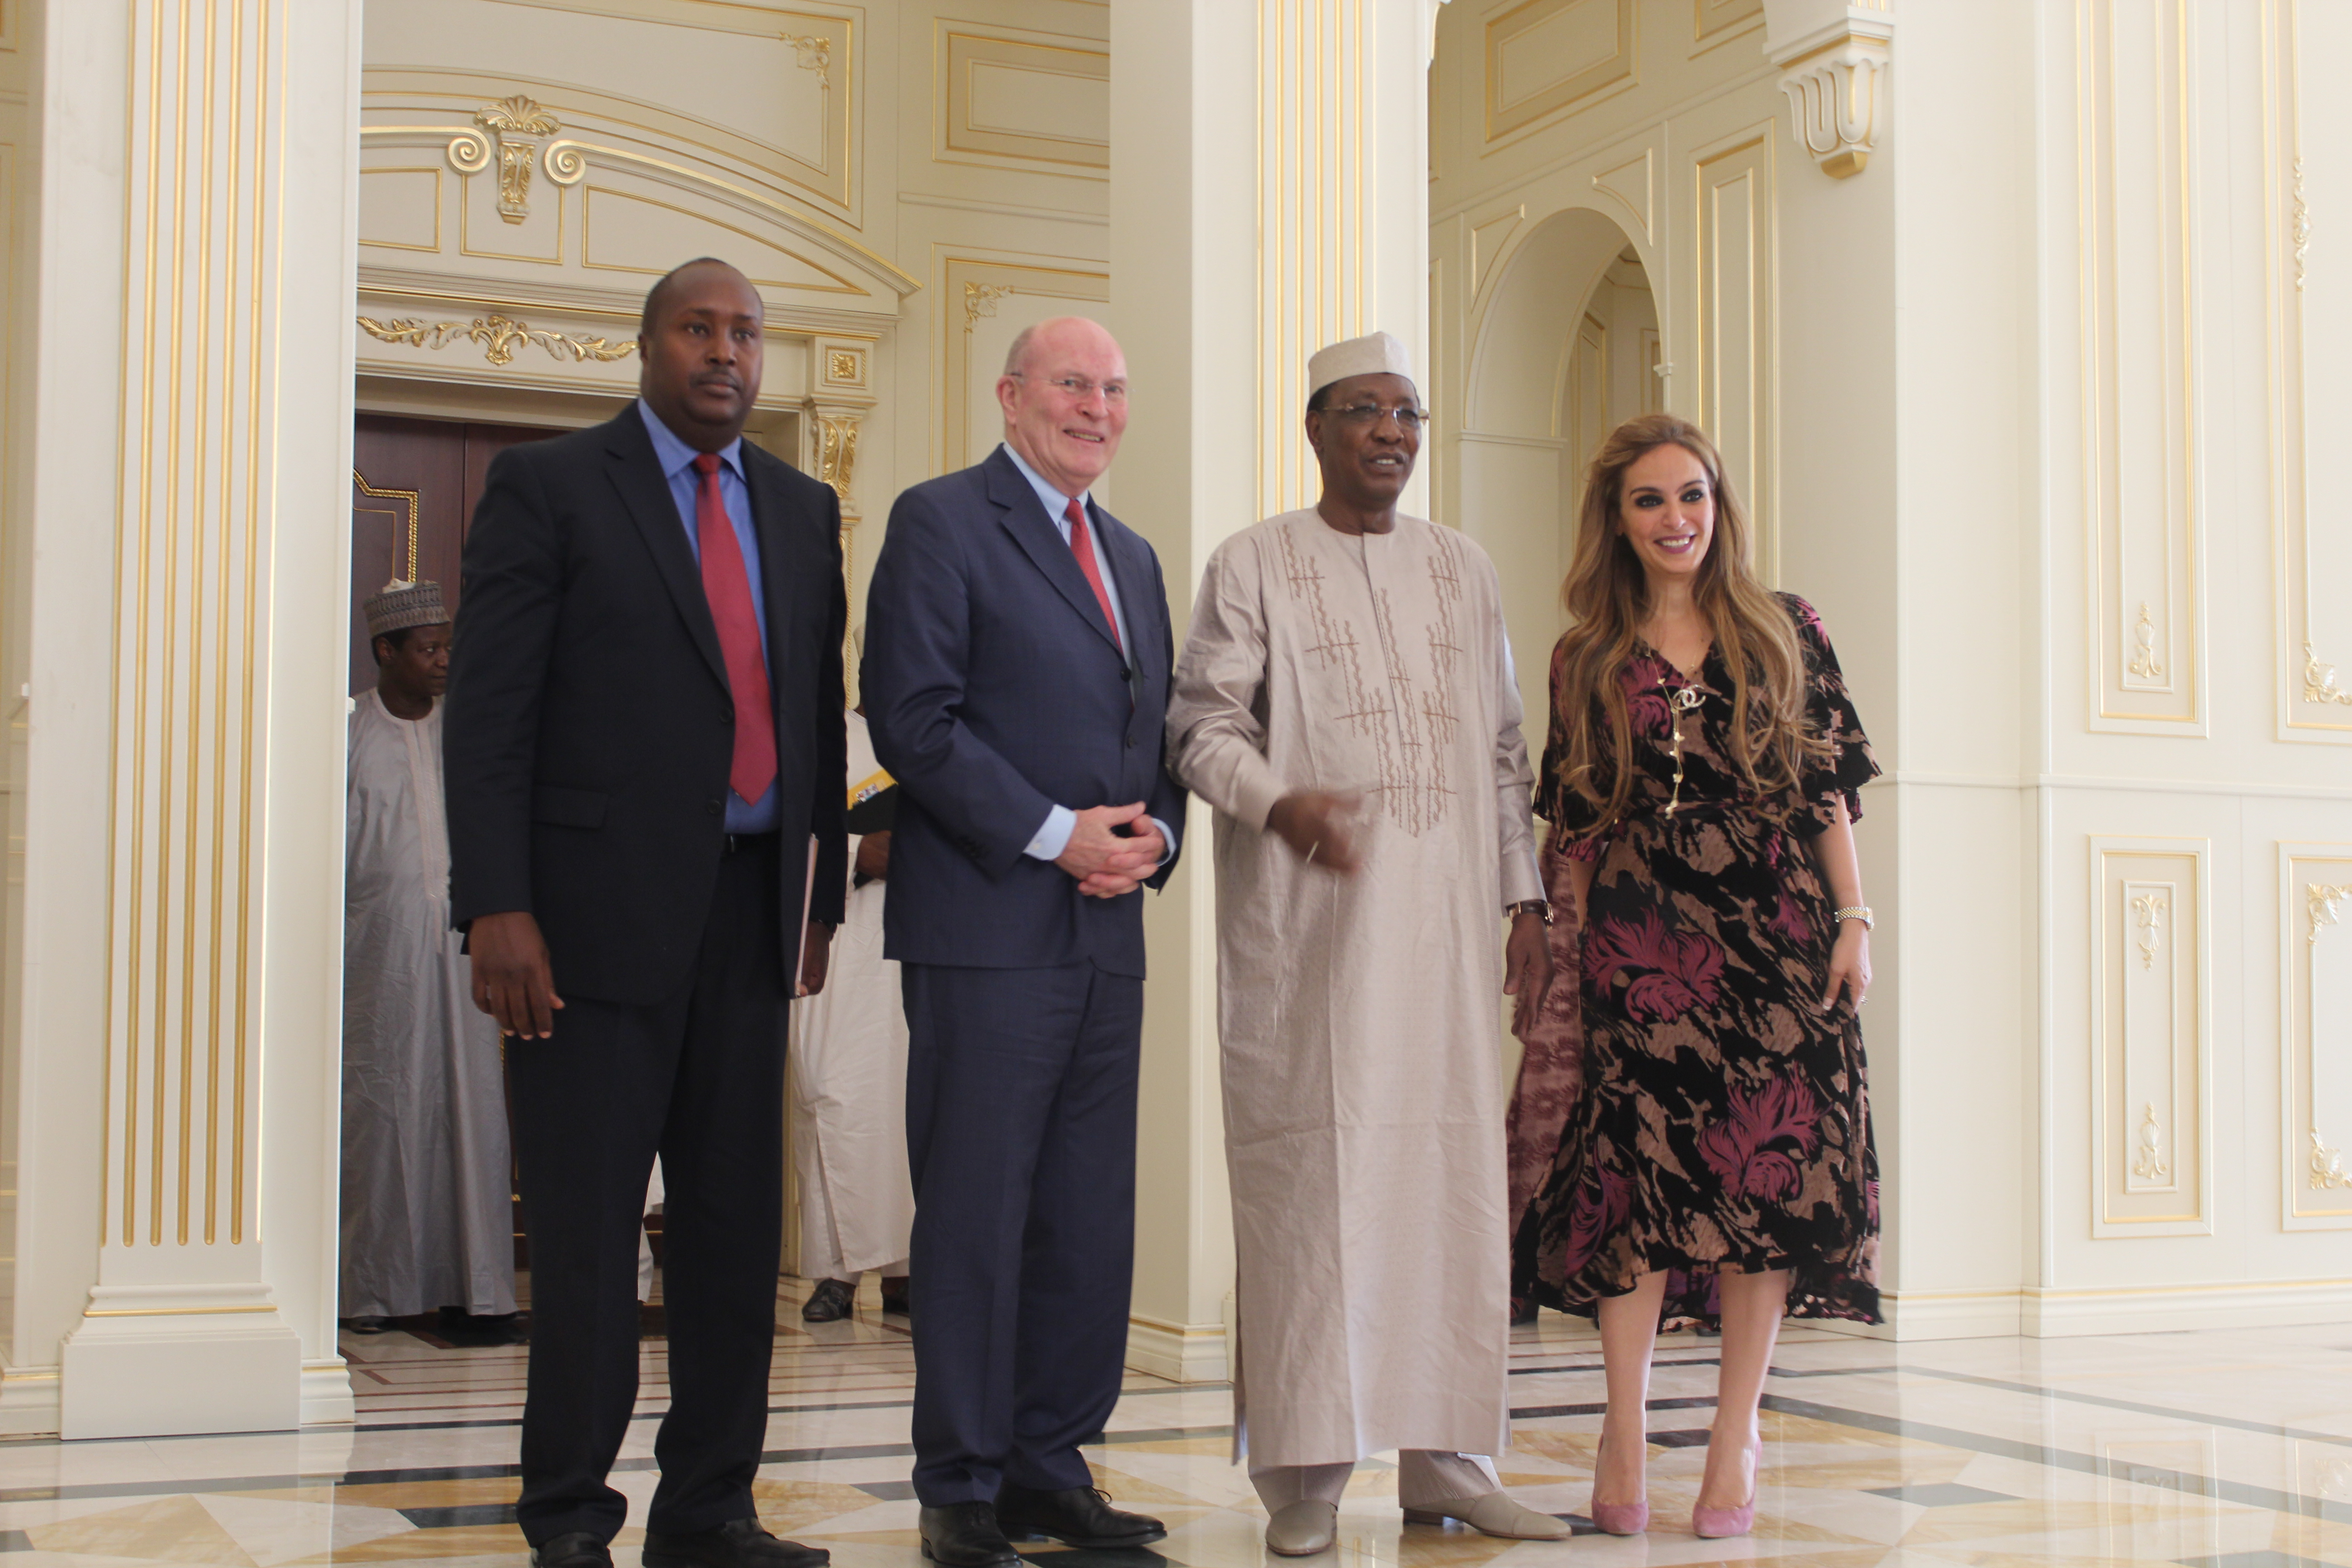 Merck launches Chad healthcare programs in partnership with First Lady of Chad